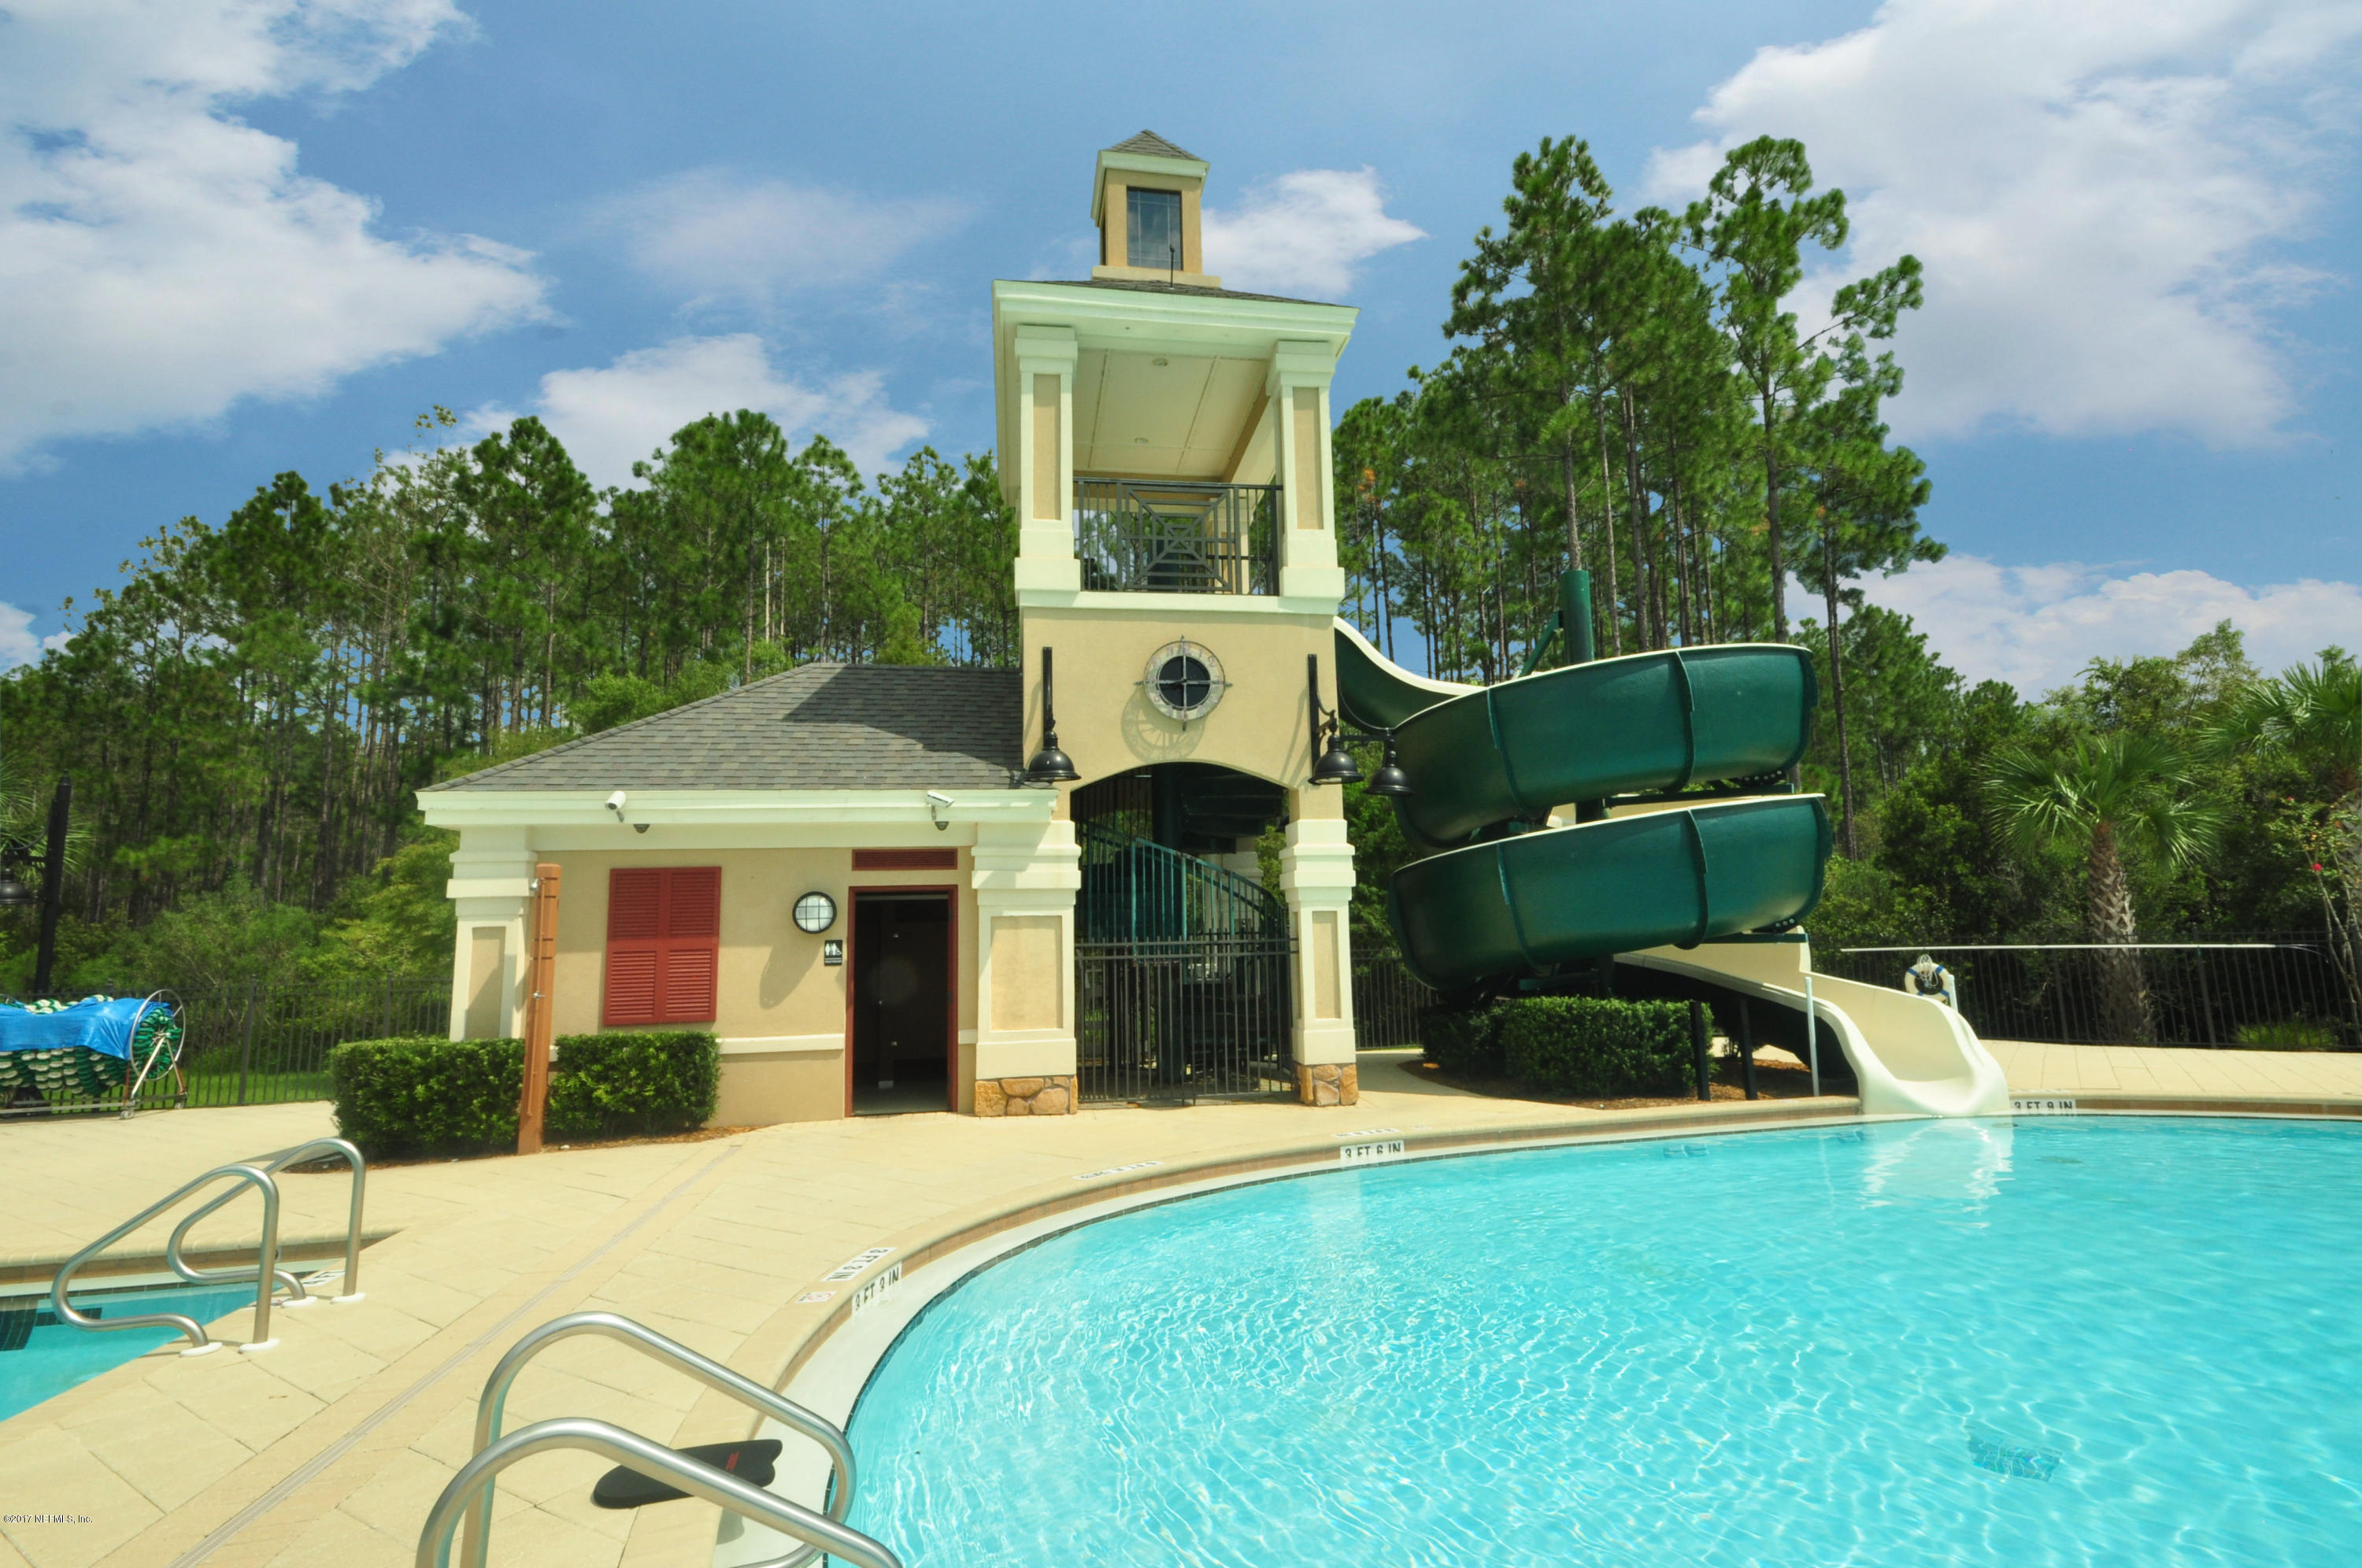 1232 CASTLE TRAIL, ST JOHNS, FLORIDA 32259, 5 Bedrooms Bedrooms, ,3 BathroomsBathrooms,Residential,For sale,CASTLE TRAIL,1059220